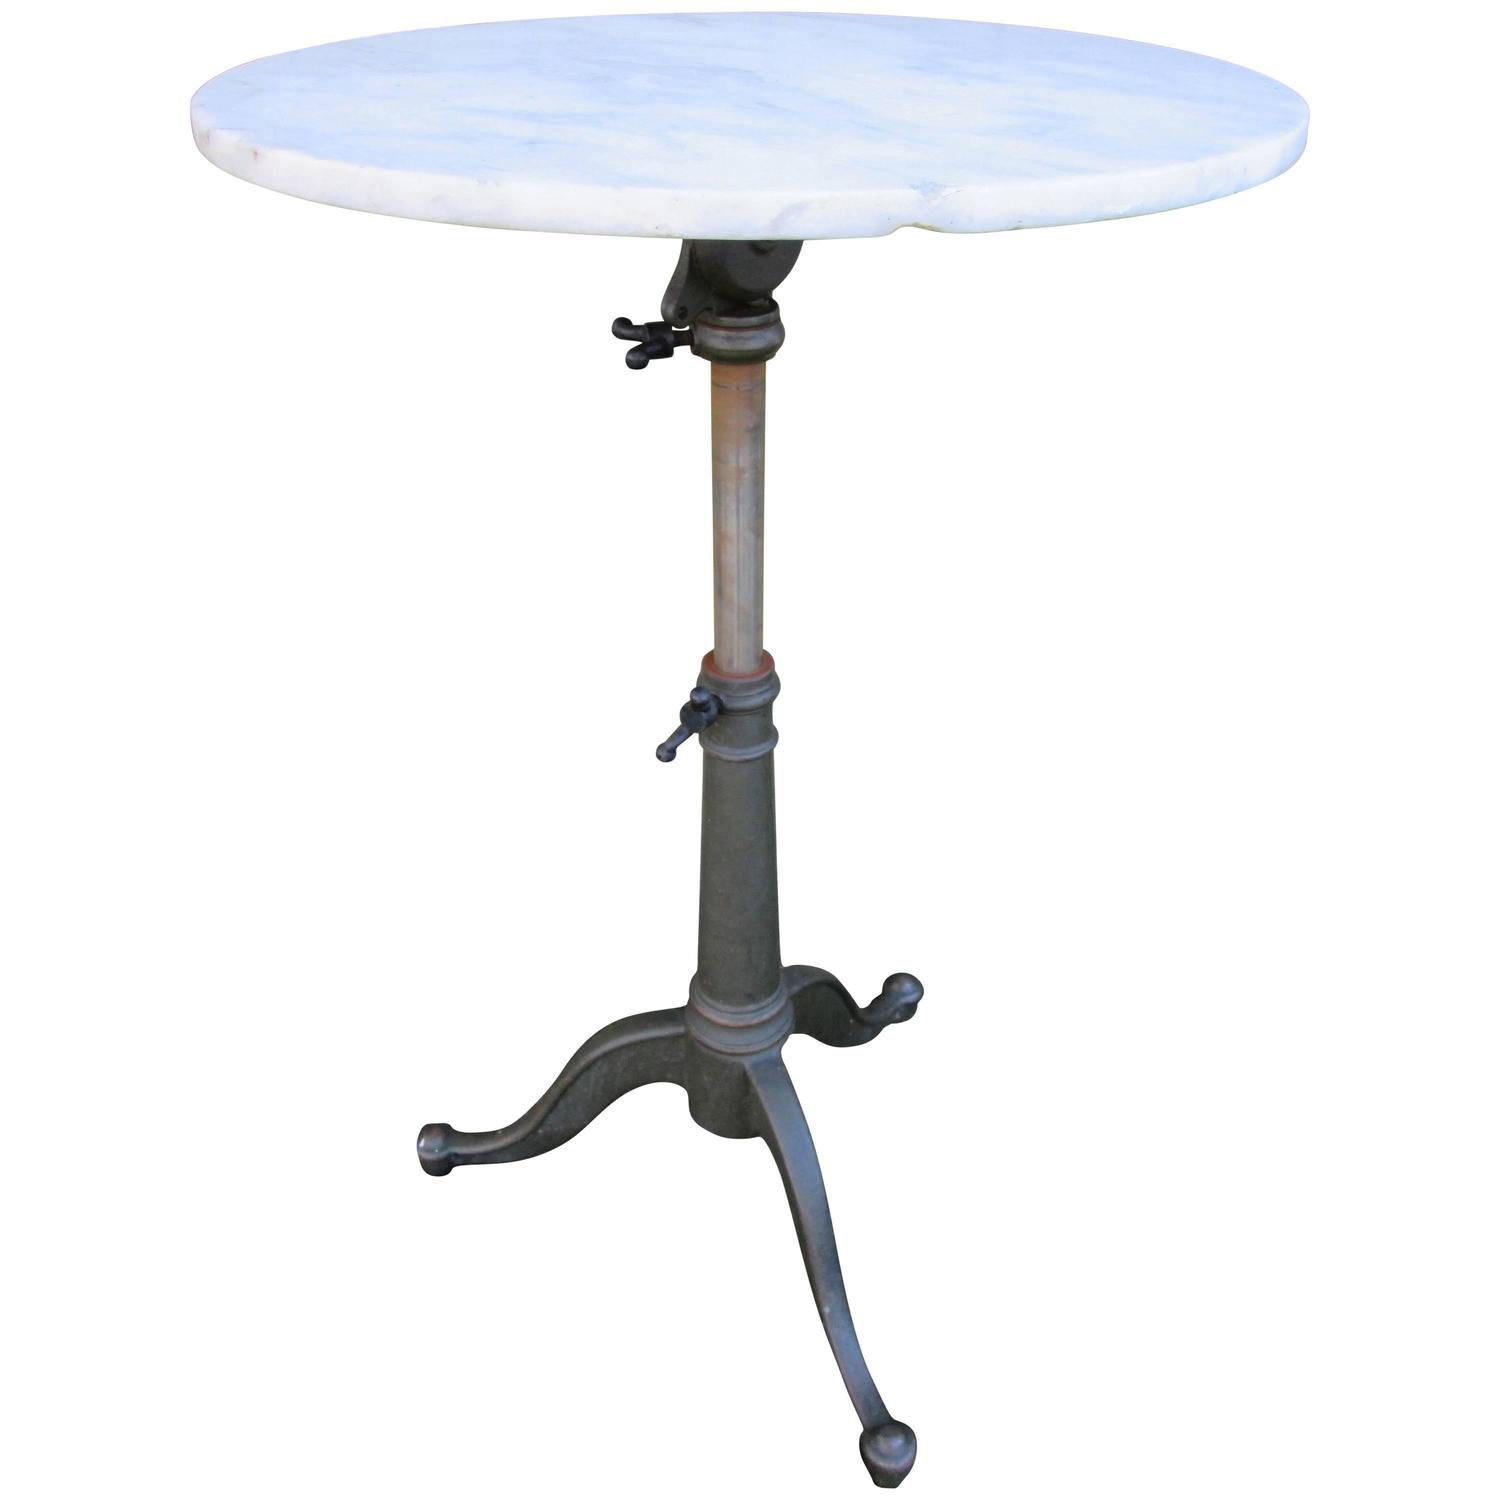 cast iron tripod table with marble top at 1stdibs. Black Bedroom Furniture Sets. Home Design Ideas